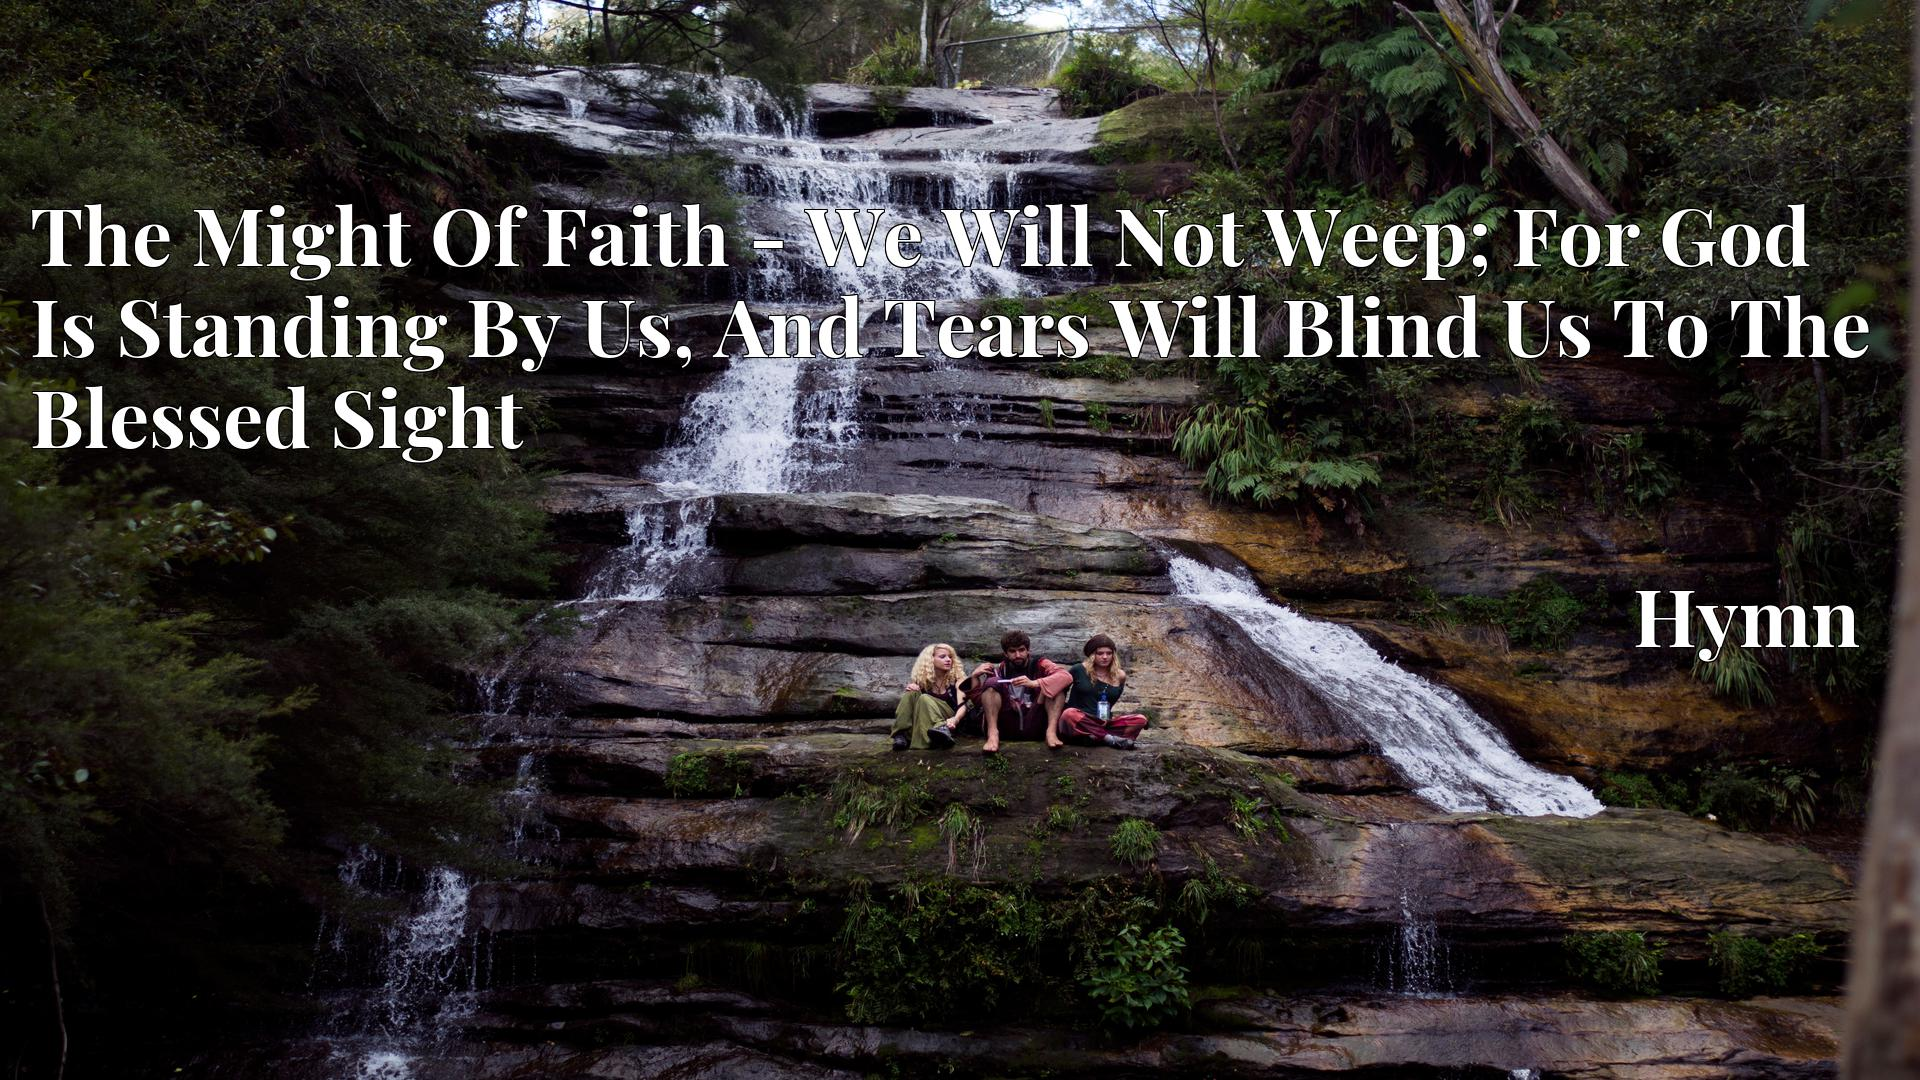 The Might Of Faith - We Will Not Weep; For God Is Standing By Us, And Tears Will Blind Us To The Blessed Sight - Hymn